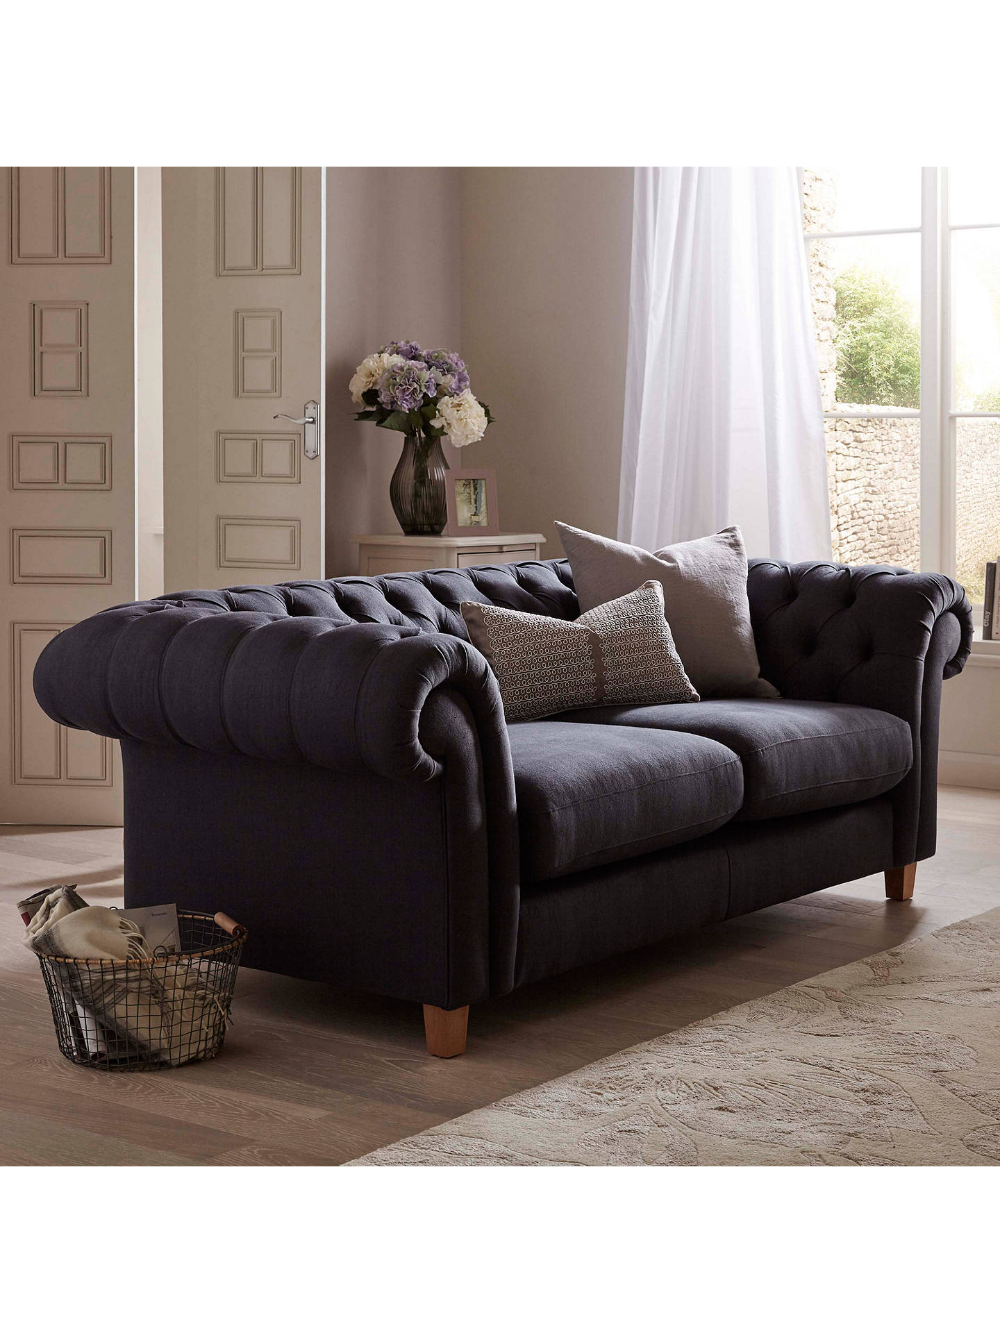 Best Chesterfield Sofa Google Search Chesterfield Sofa 640 x 480